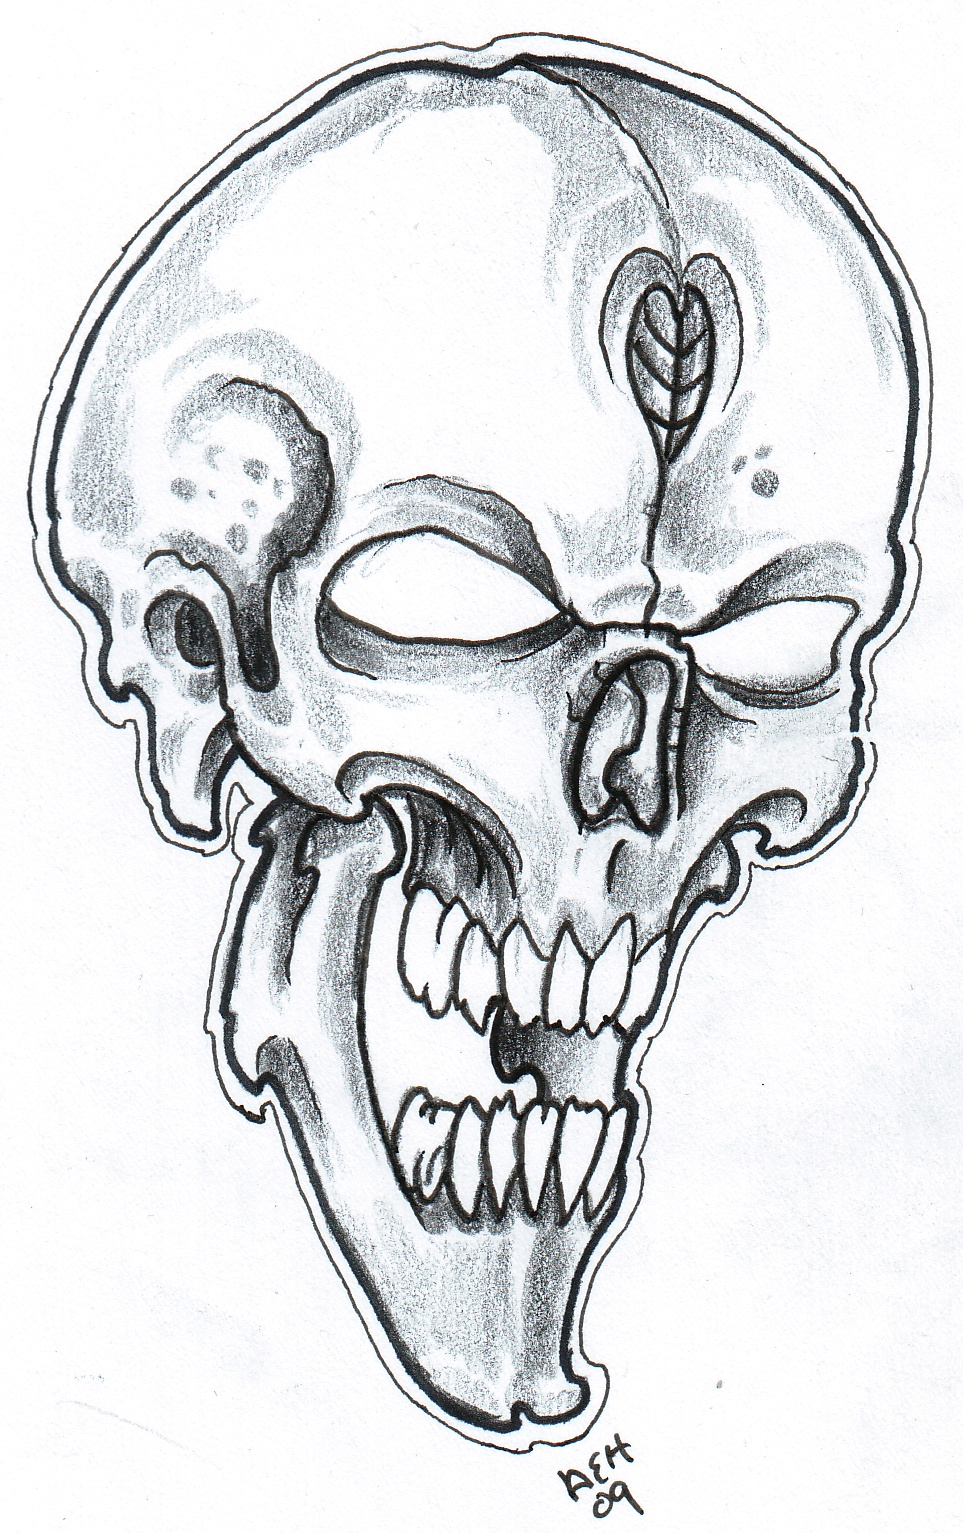 Afrenchieforyourthoughts skulls tattoos drawings for Drawing design ideas